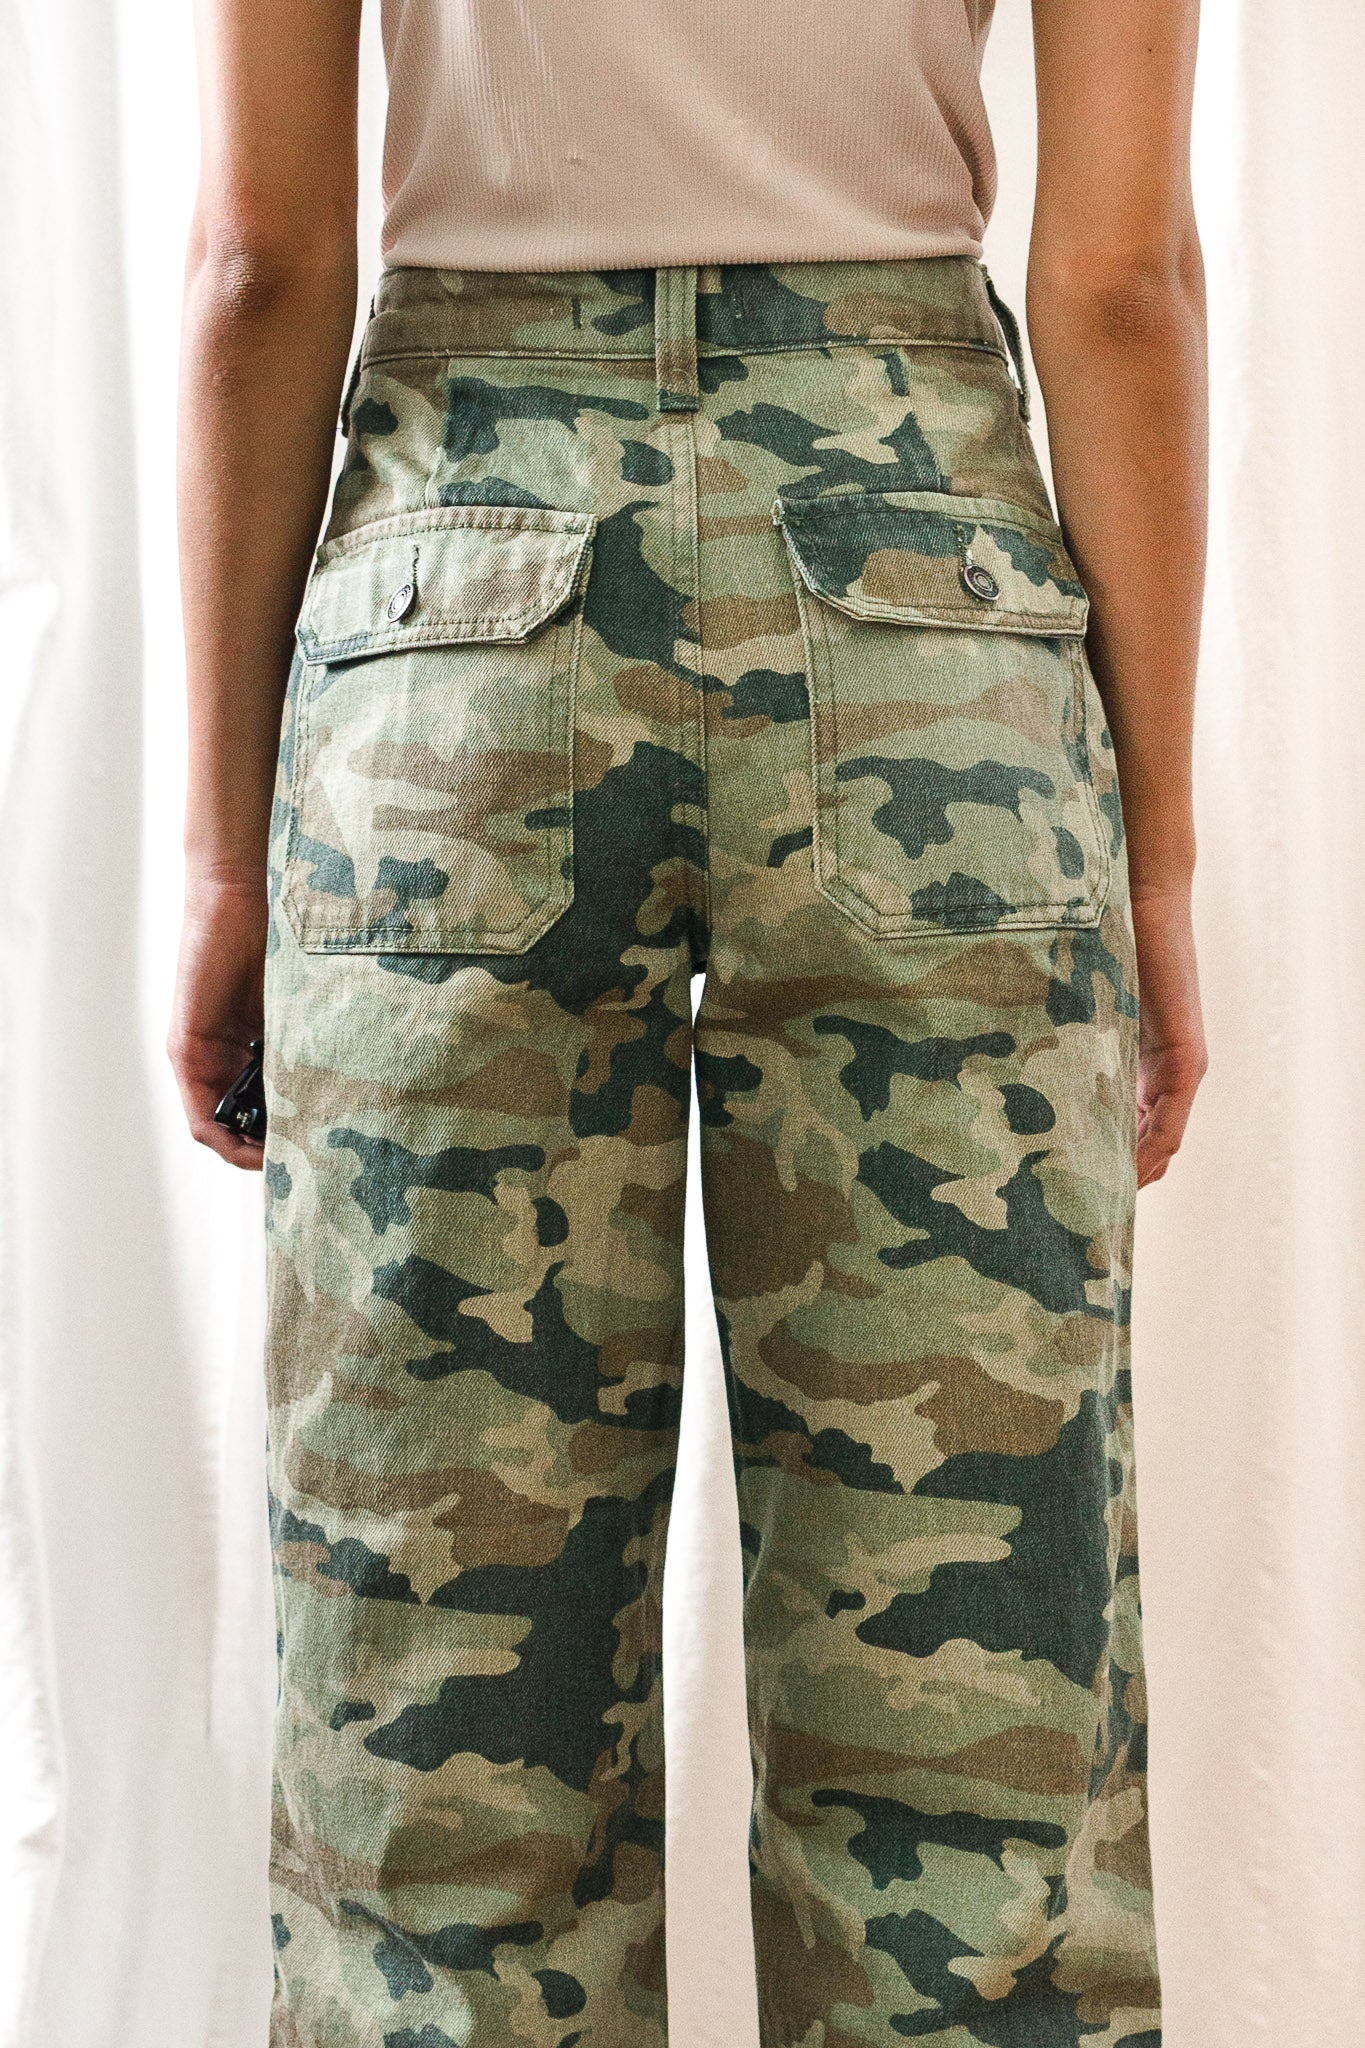 Remy Pant Camo Printed - The Canyon